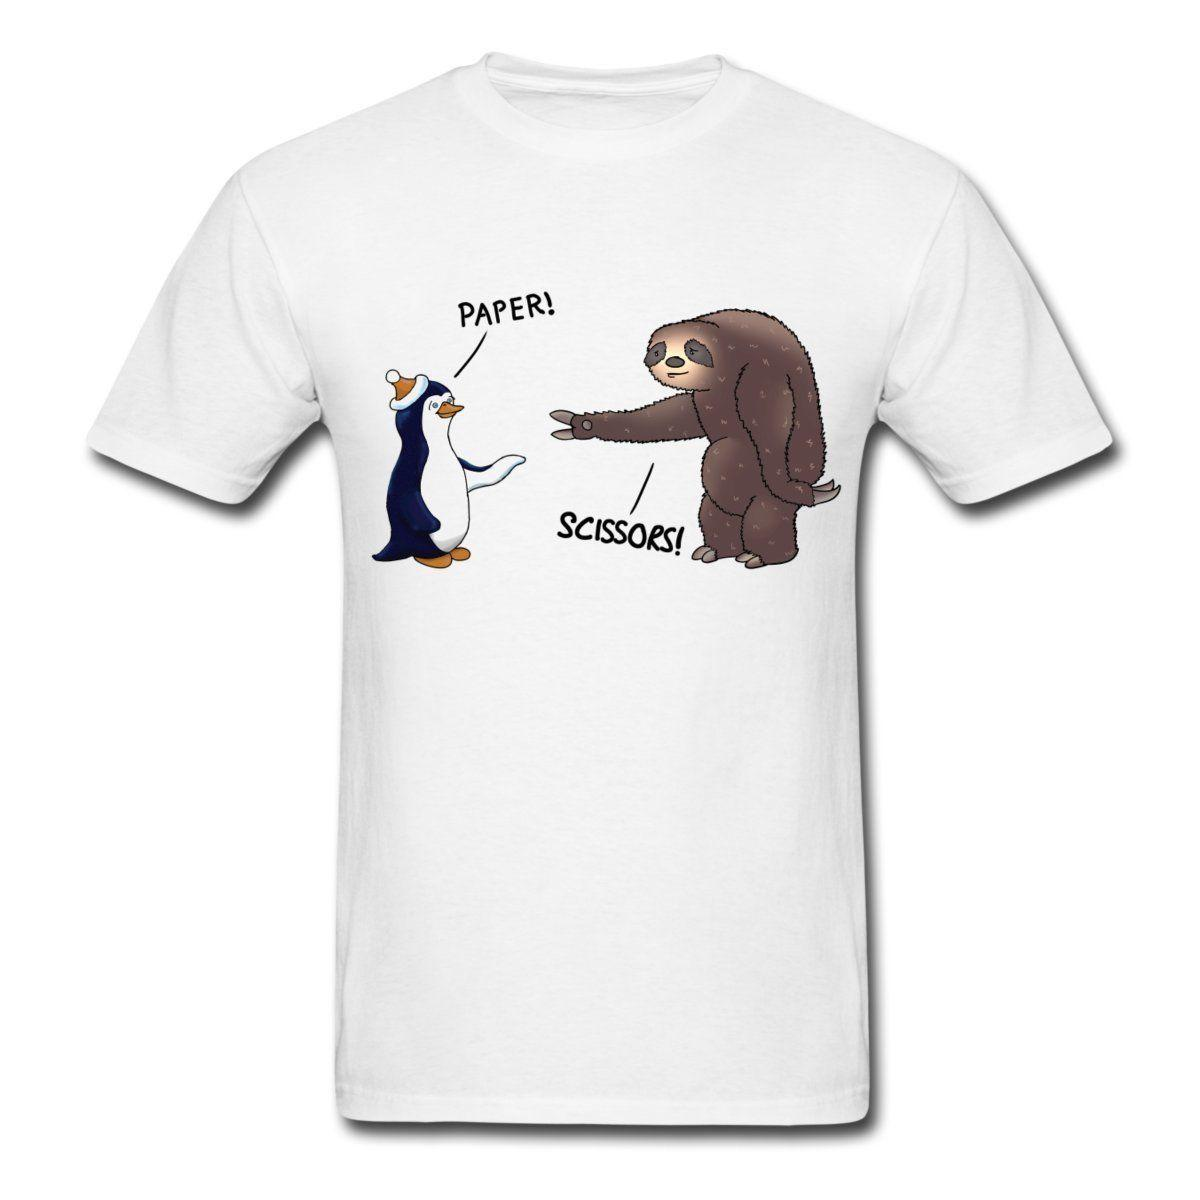 Funny T Shirt Slogans Mens Crew Neck Regular Short Sloth And Penguin Rock Paper Scissors Tee Shirt Fitted Shirts T Shirt Sale From Teespringshirts